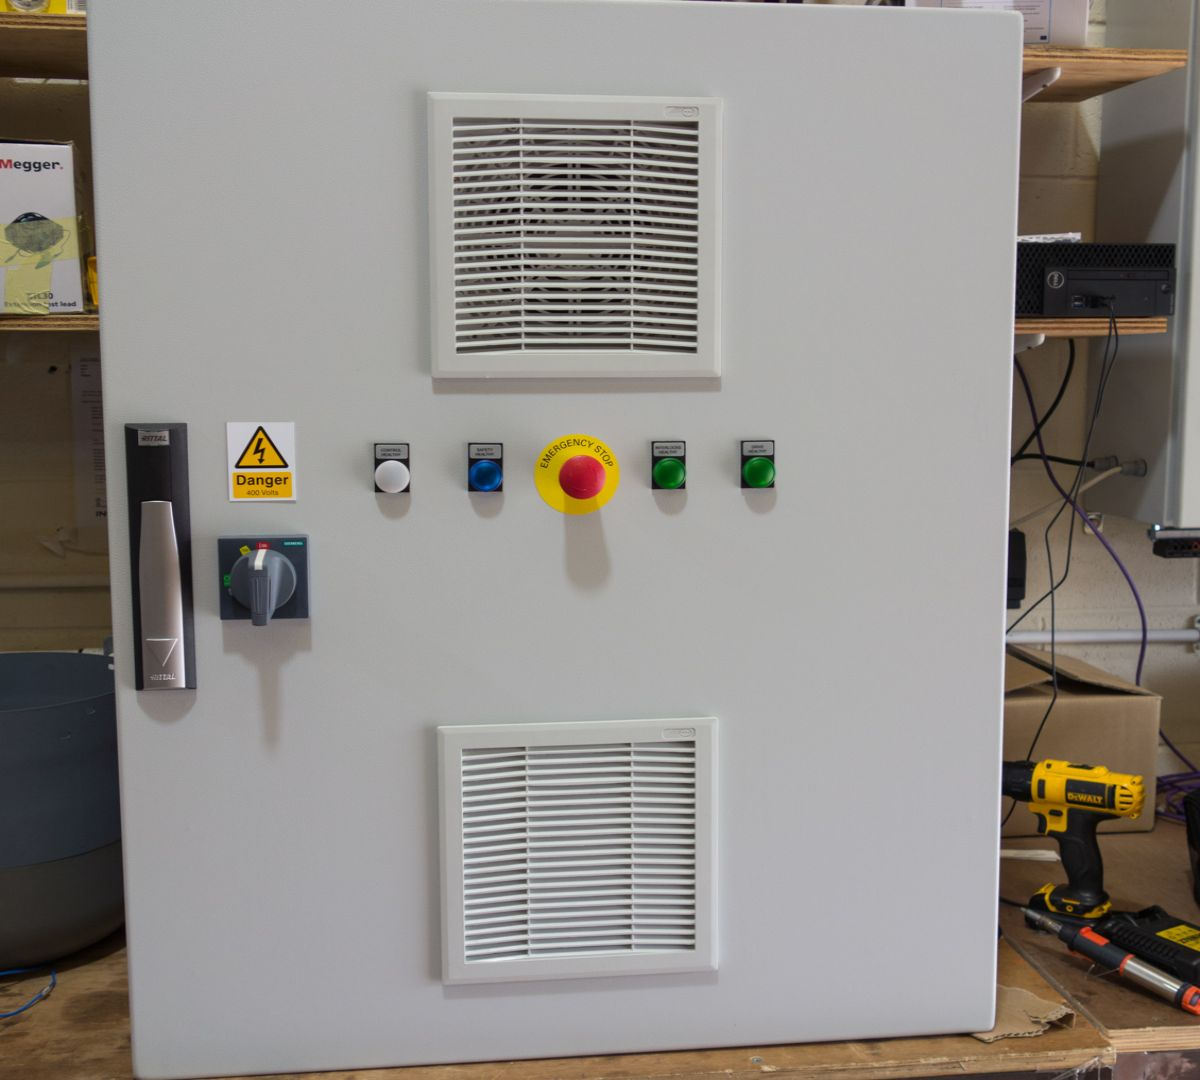 Machine-Mounted Extruder Control Panel